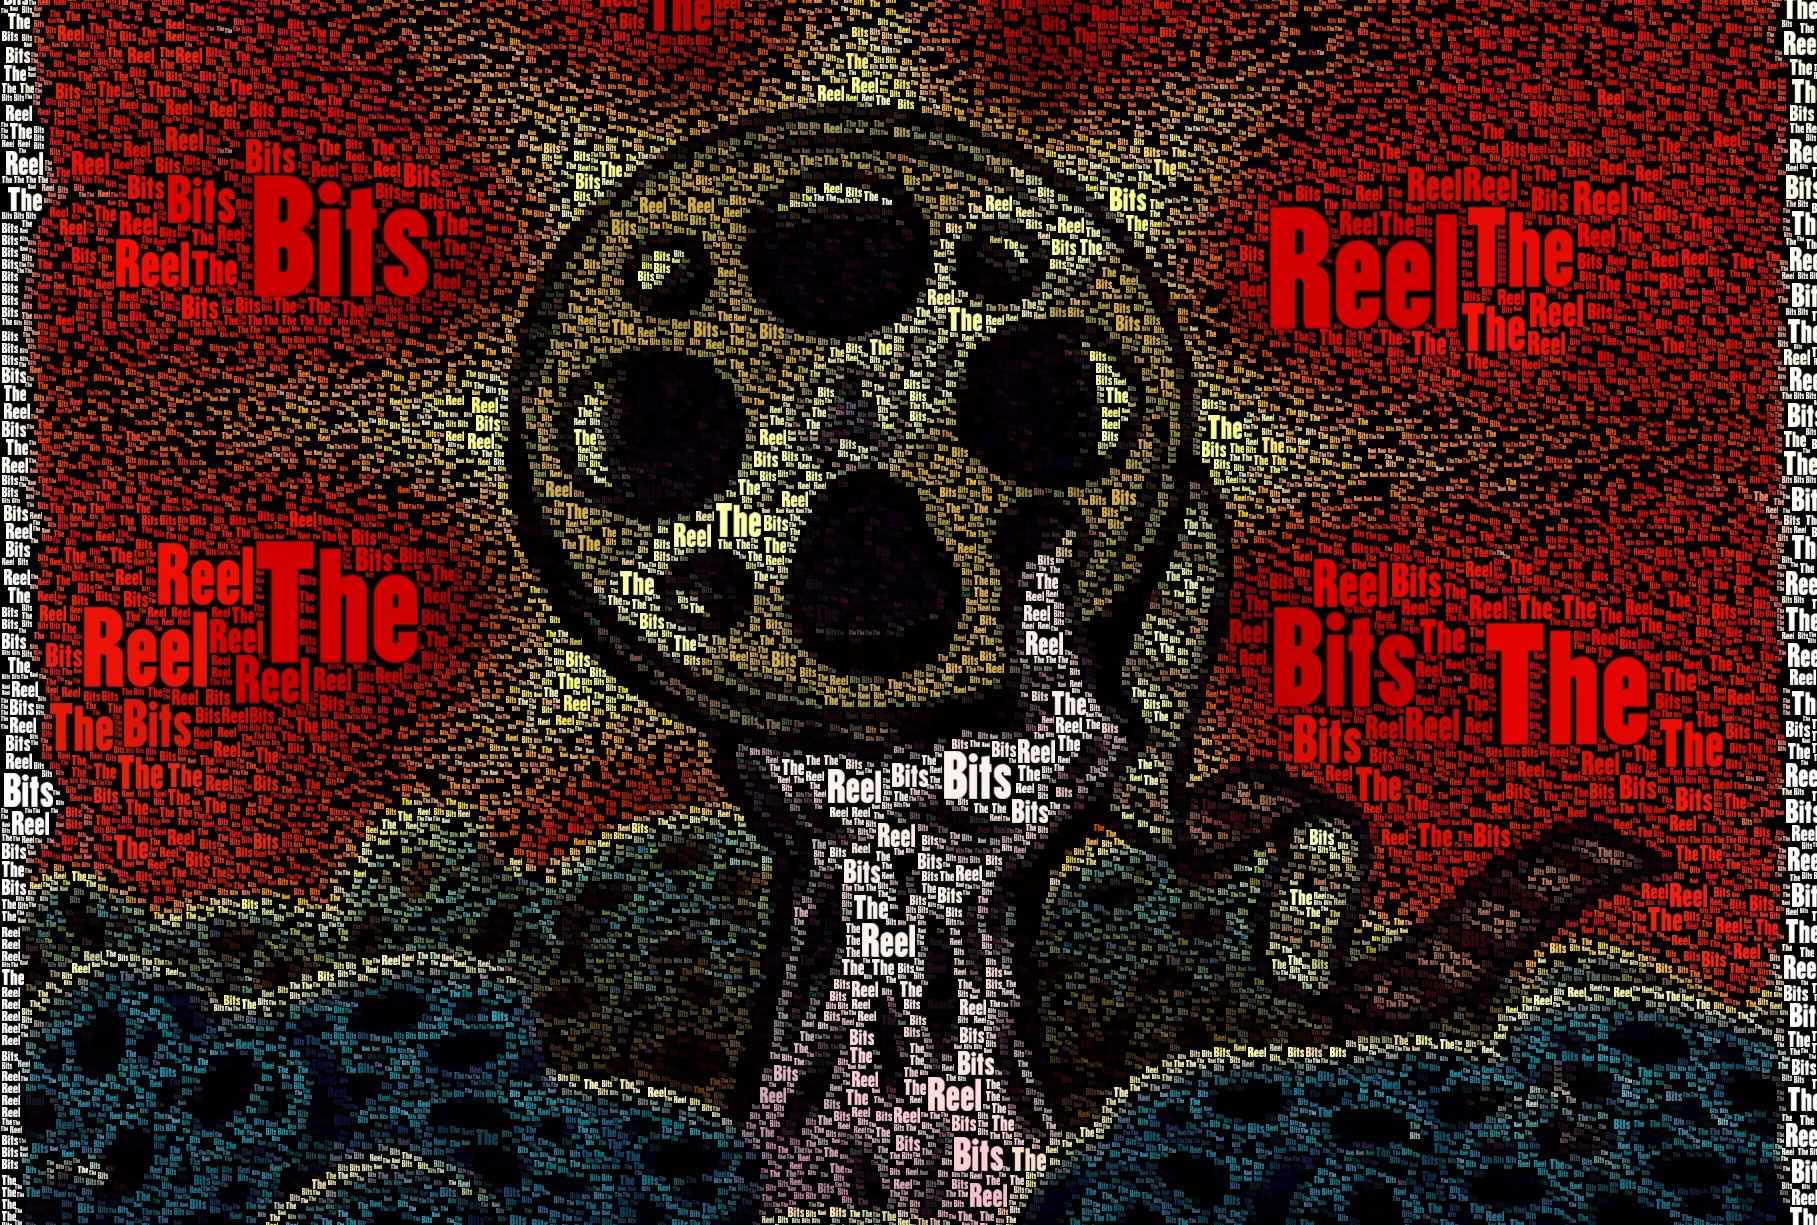 The Reel Bits - Word Foto - MIFF2012